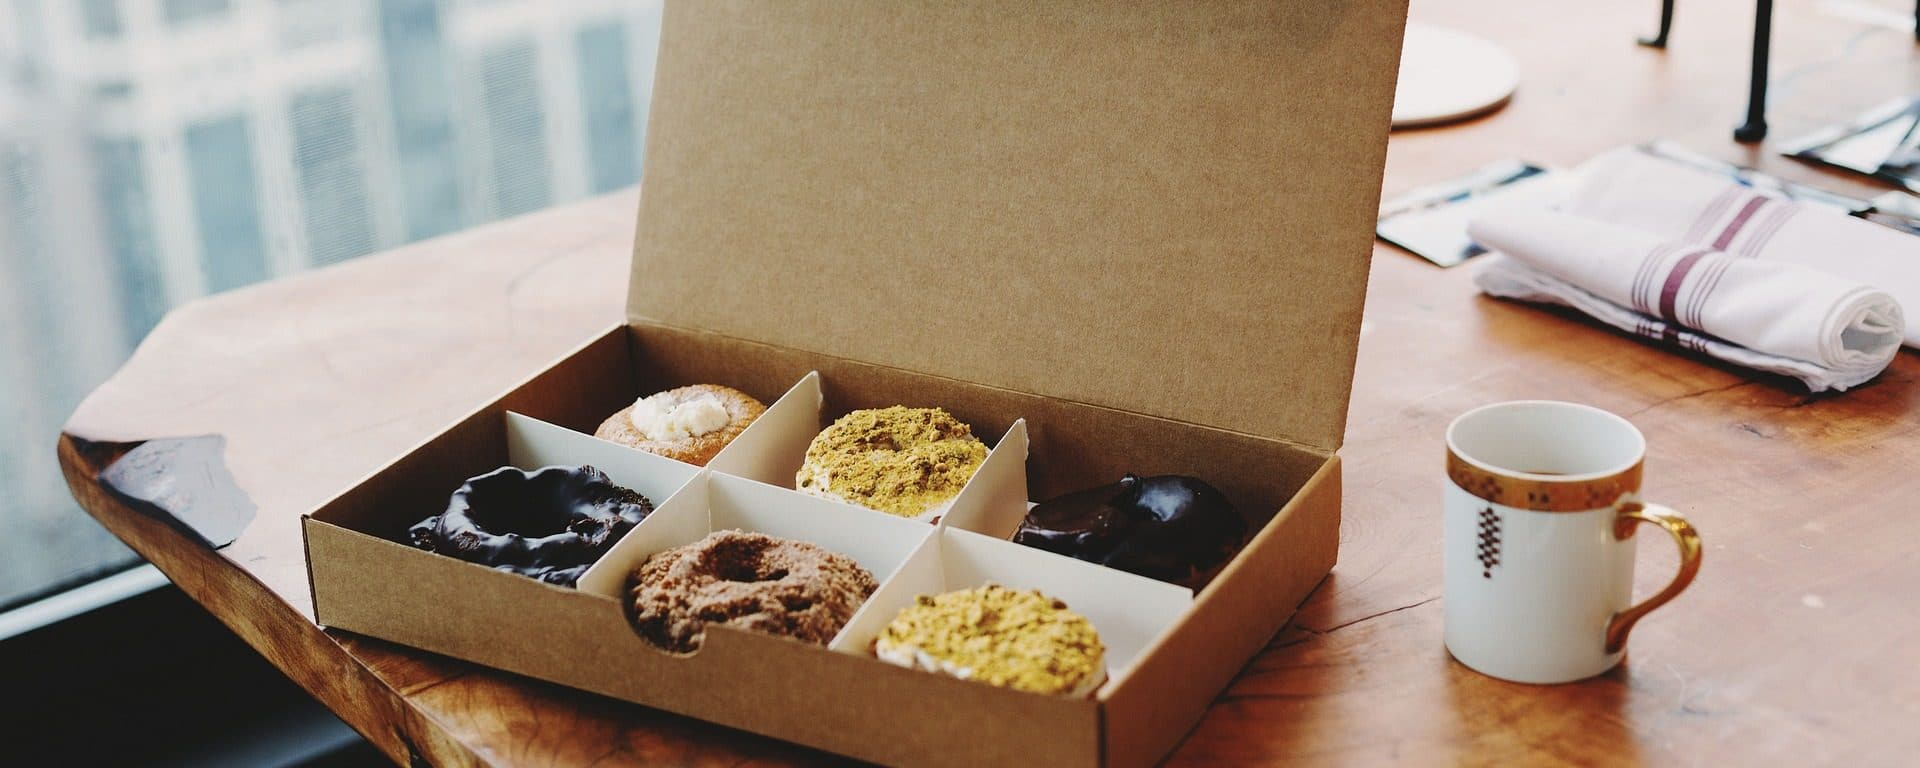 donuts, headaches and temptation